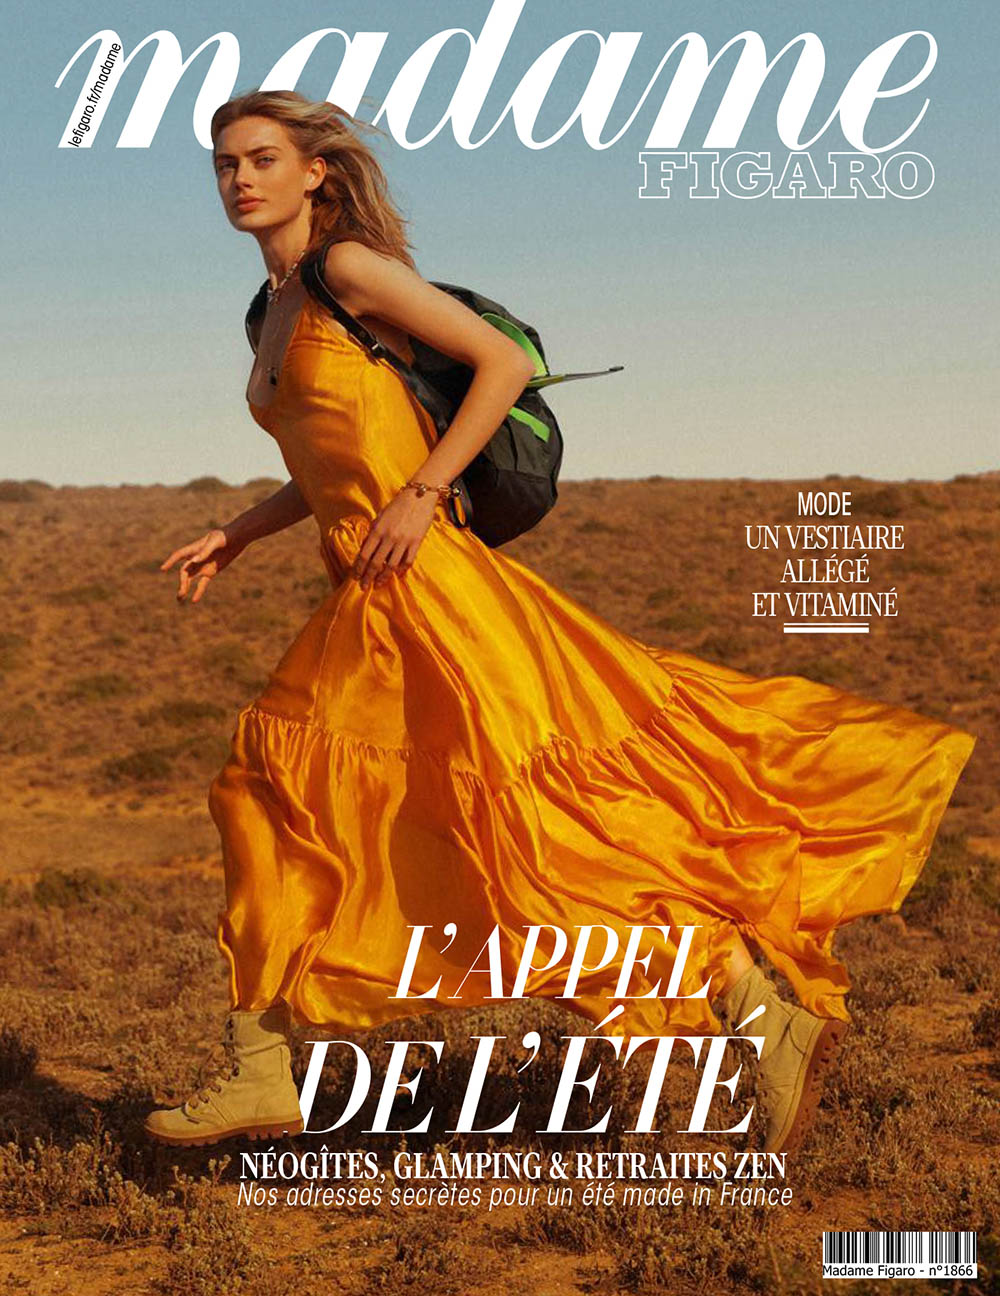 Hanna Verhees covers Madame Figaro May 29th, 2020 by Cédric Viollet